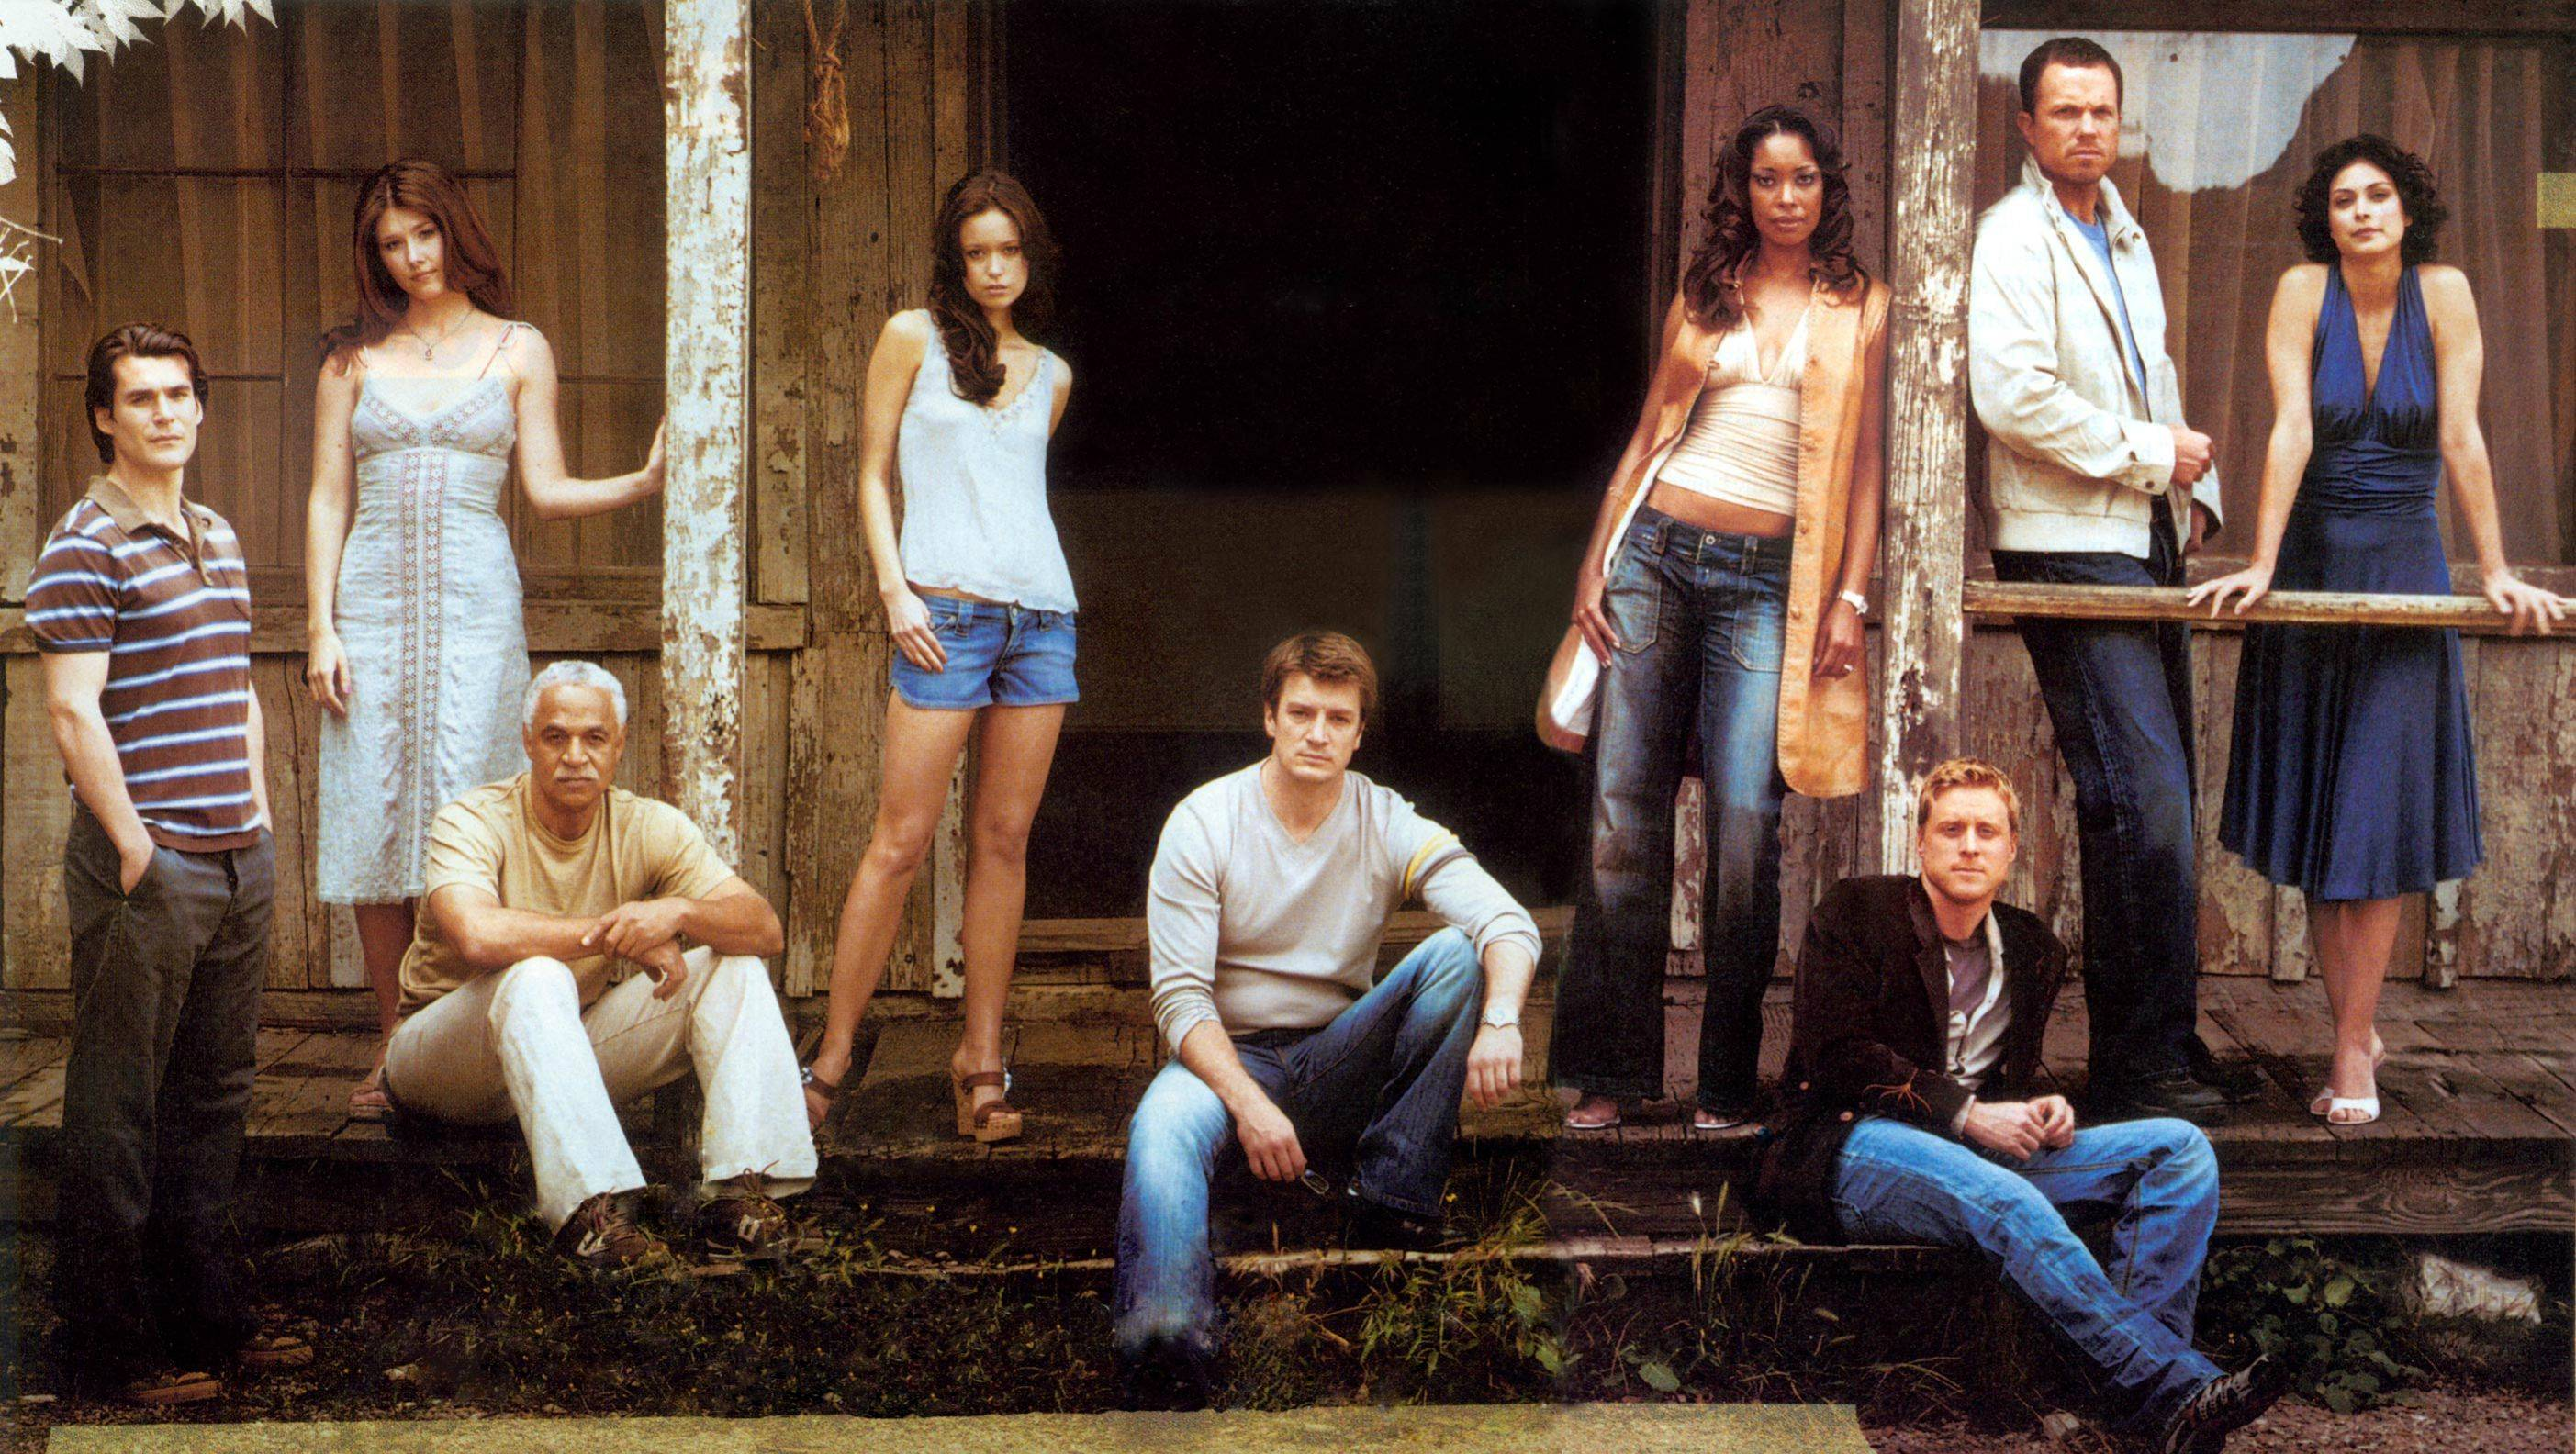 TV Show Firefly Wallpapers - Top Free TV Show Firefly